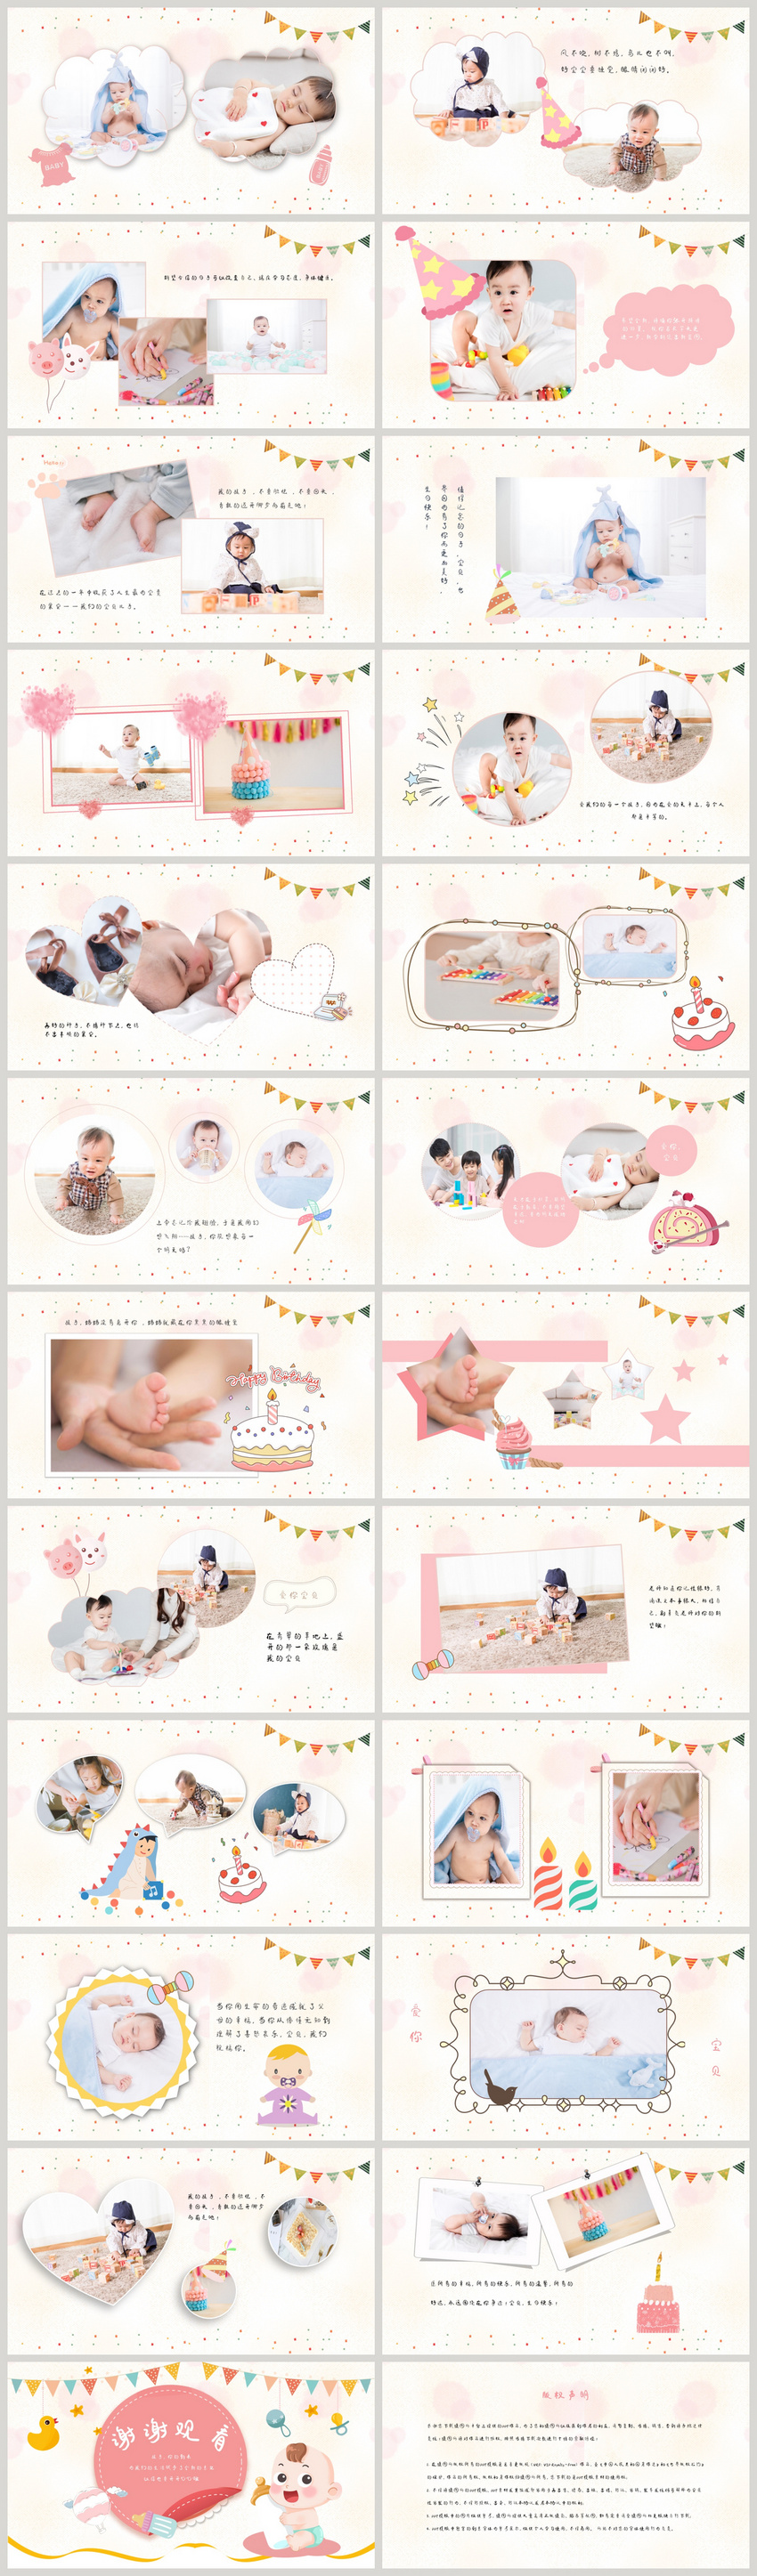 Pink Cartoon Cute Child Growth Album Ppt Template Powerpoint Templete Ppt Free Download 401643592 Lovepik Com